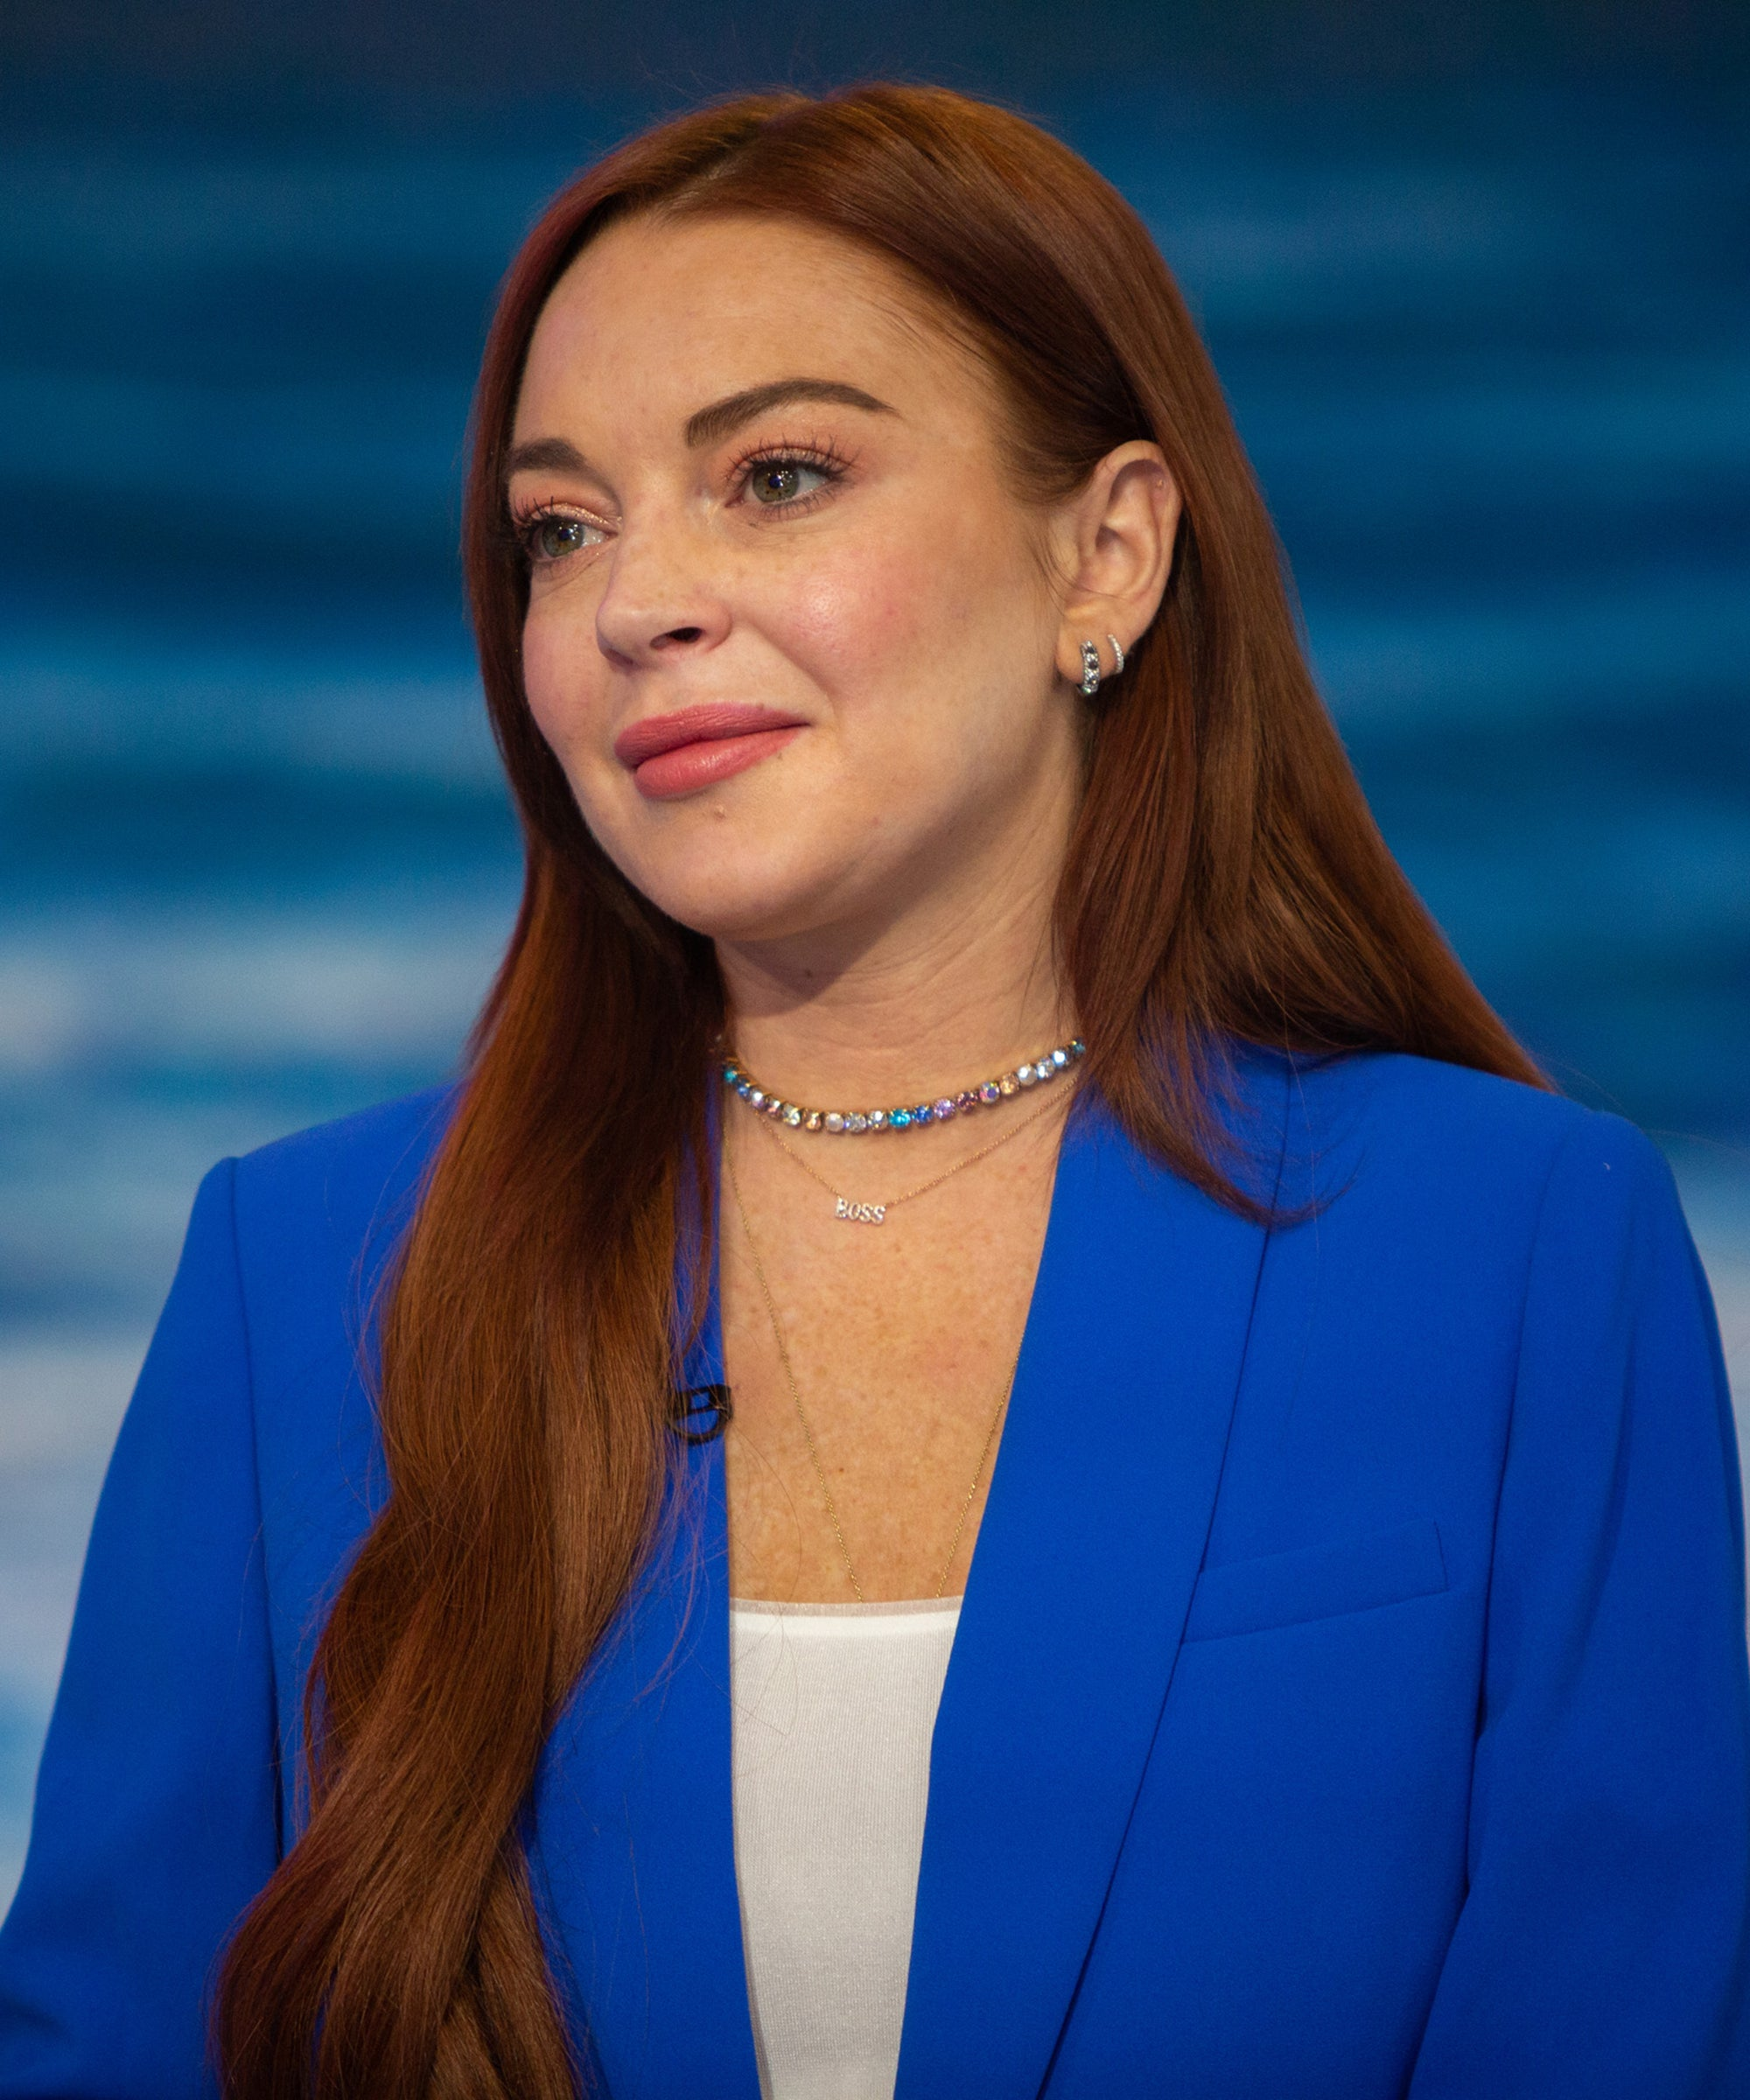 Lindsay Lohan Broke Up With Her Mysterious, Not Royal Boyfriend